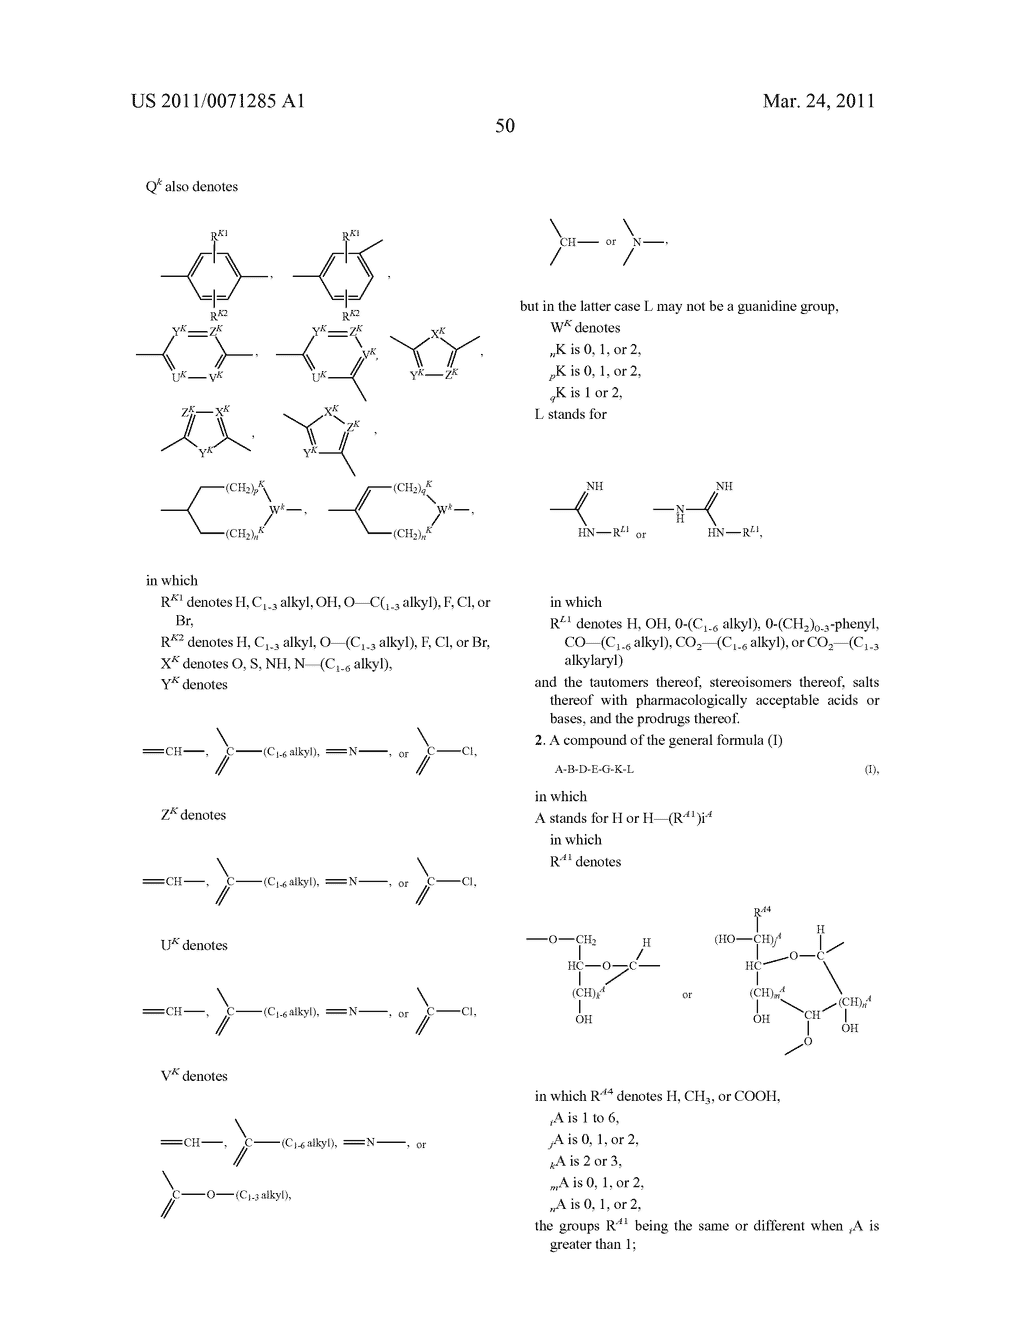 LOW-MOLECULAR SERINE PROTEASES INHIBITORS COMPRISING POLYHYDROXY-ALKYL AND POLYHYDROXY-CYCLOALKYL RADICALS - diagram, schematic, and image 51